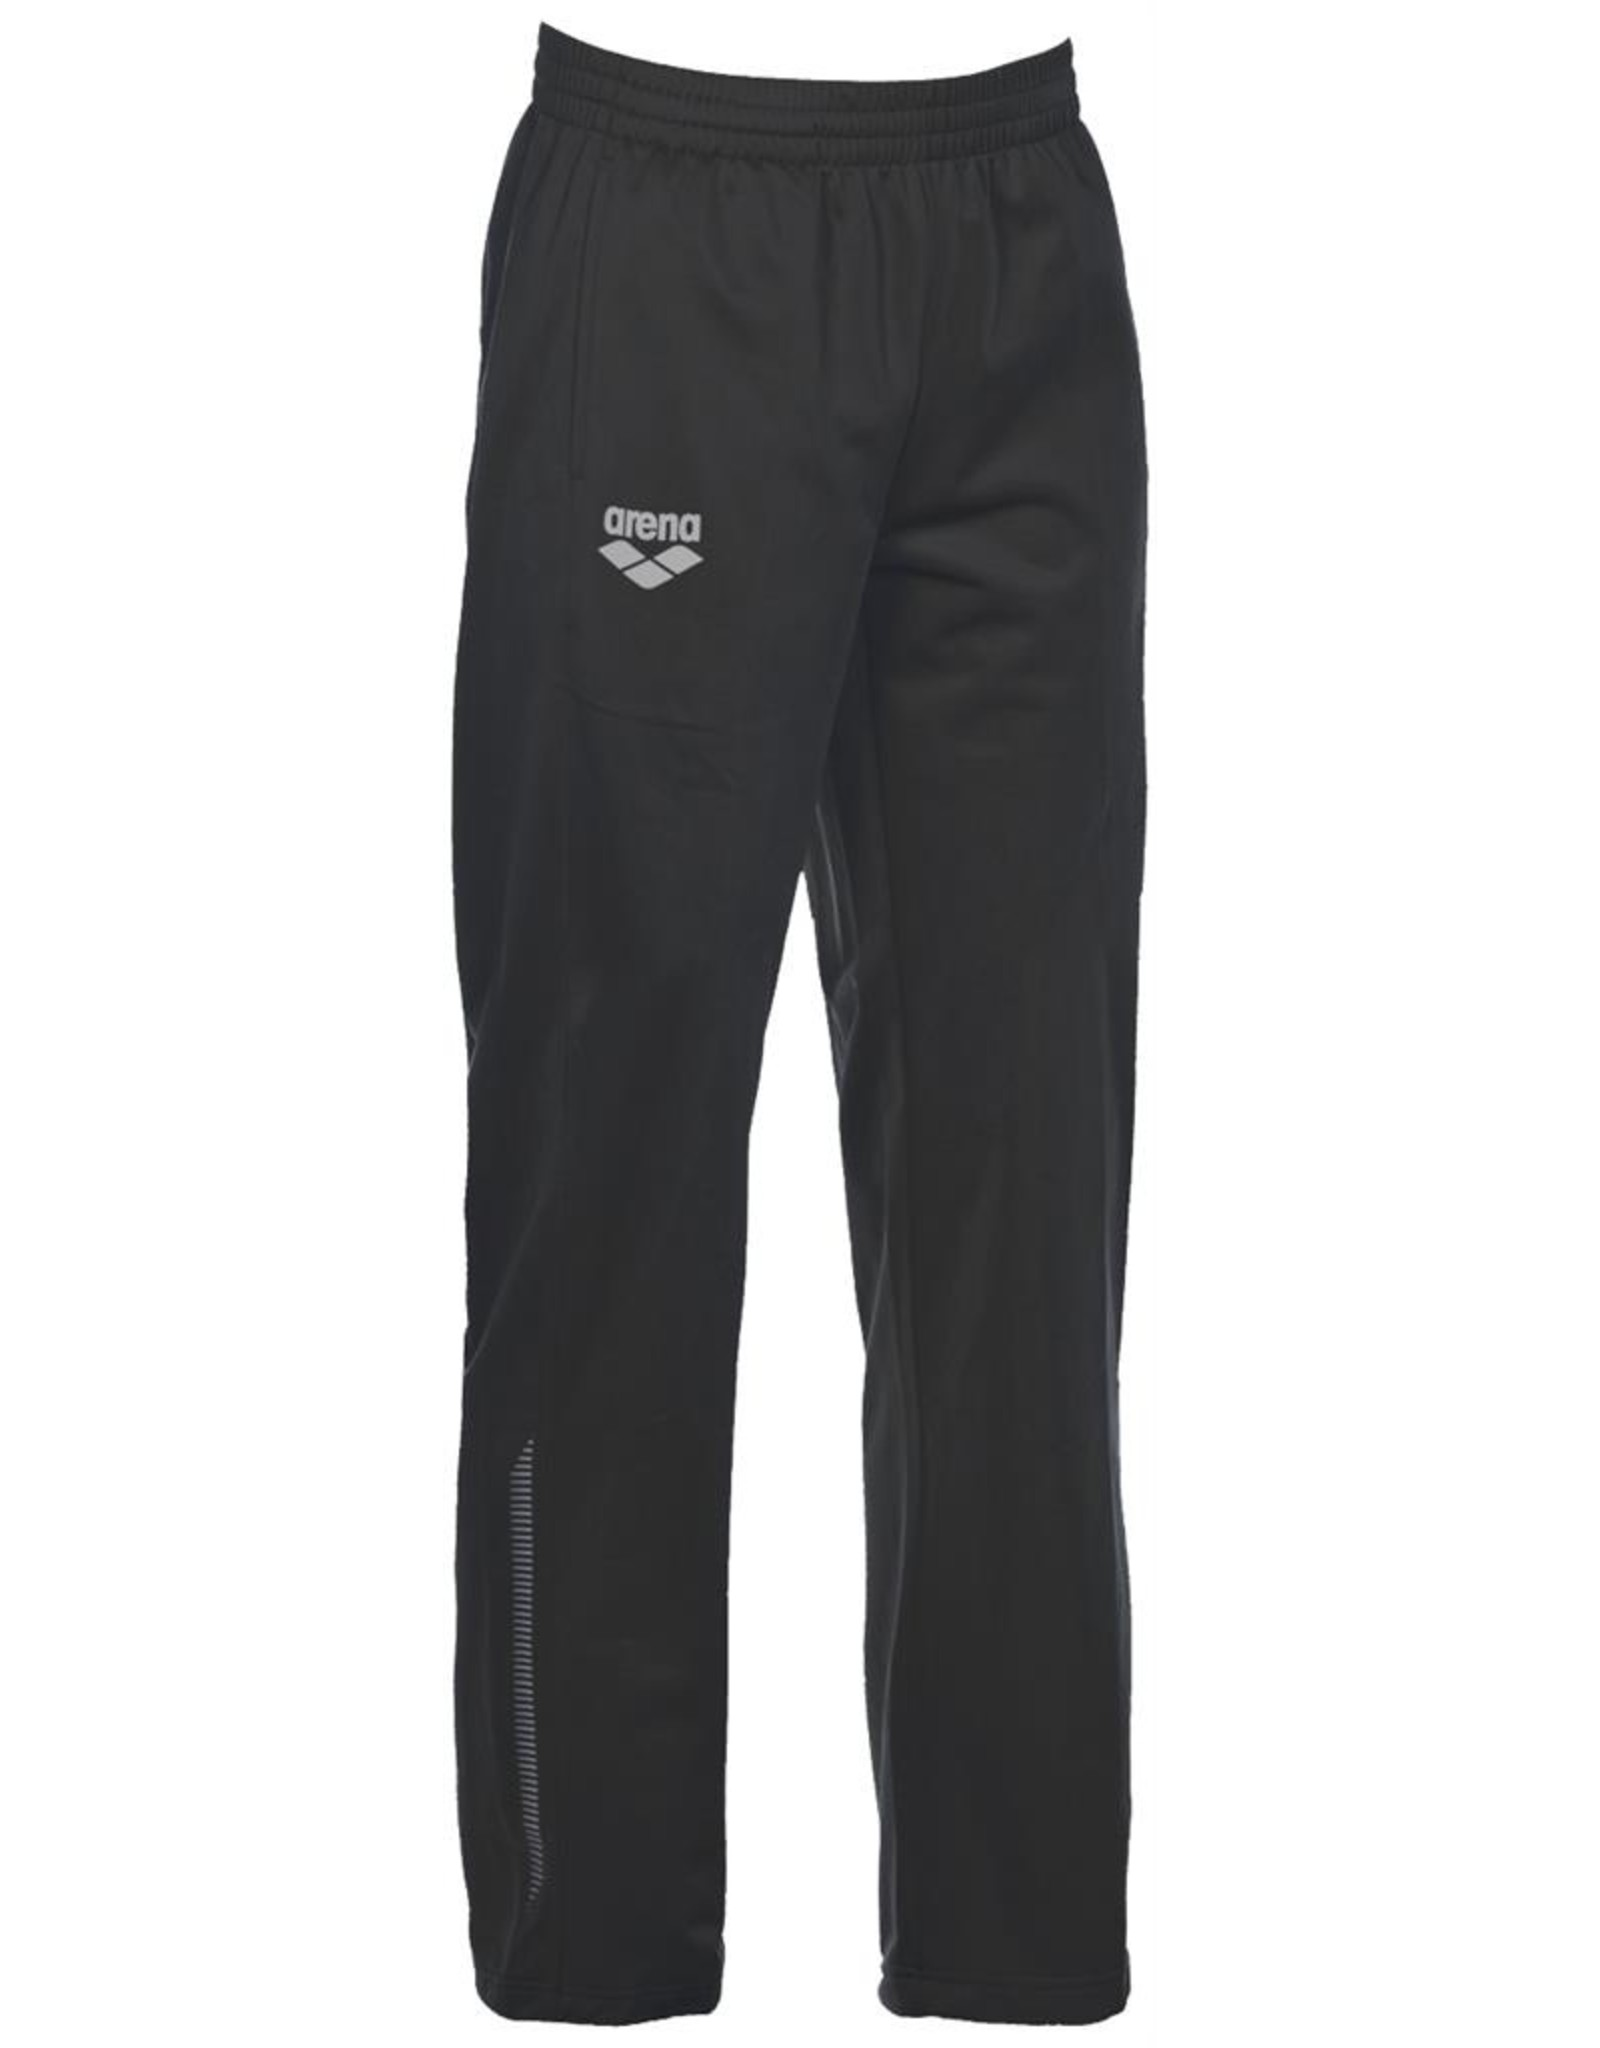 ARENA ARENA TL KNITTED POLY PANT